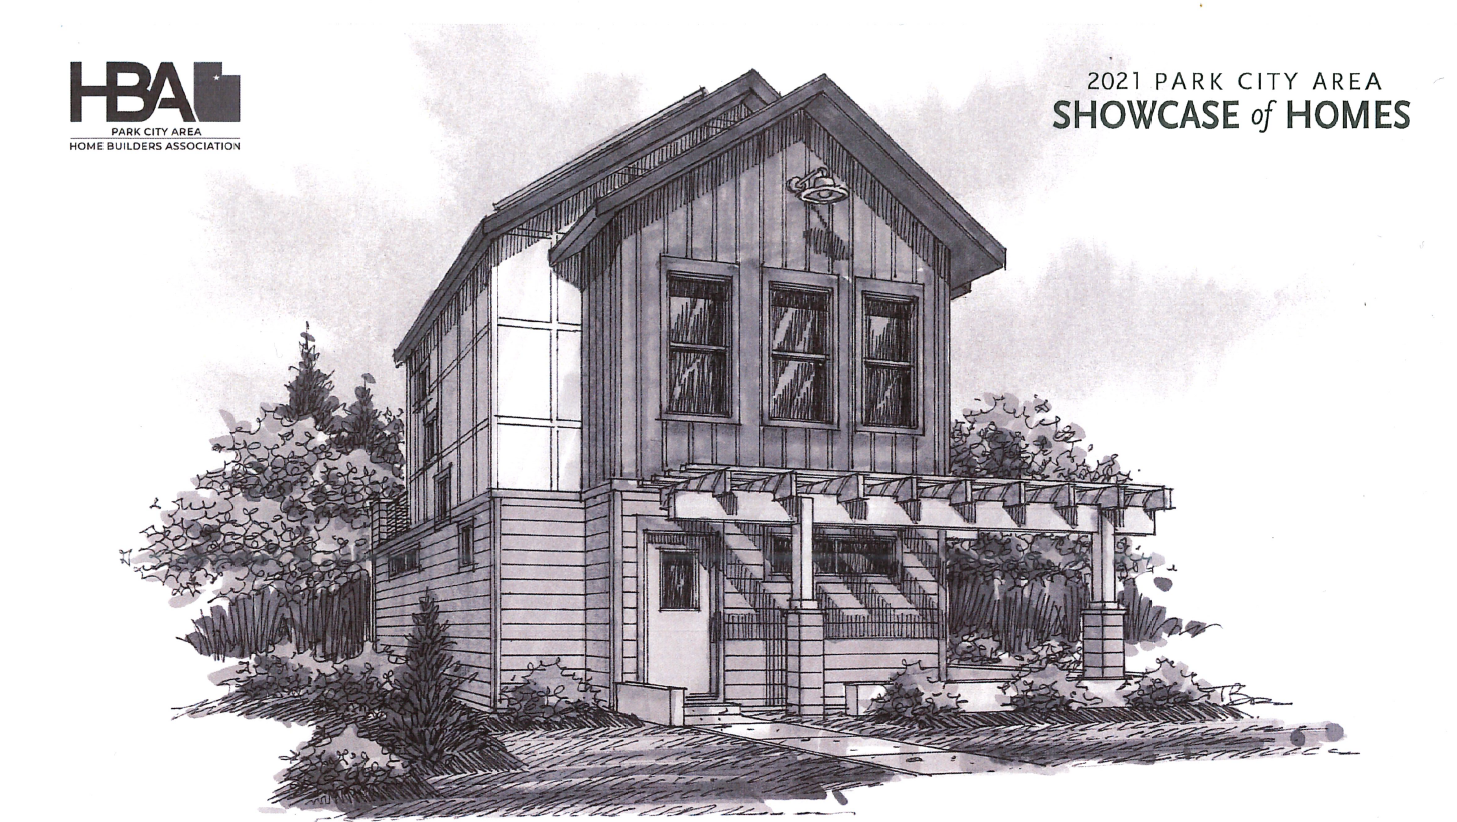 Habitat is in the 2021 Showcase of Homes!